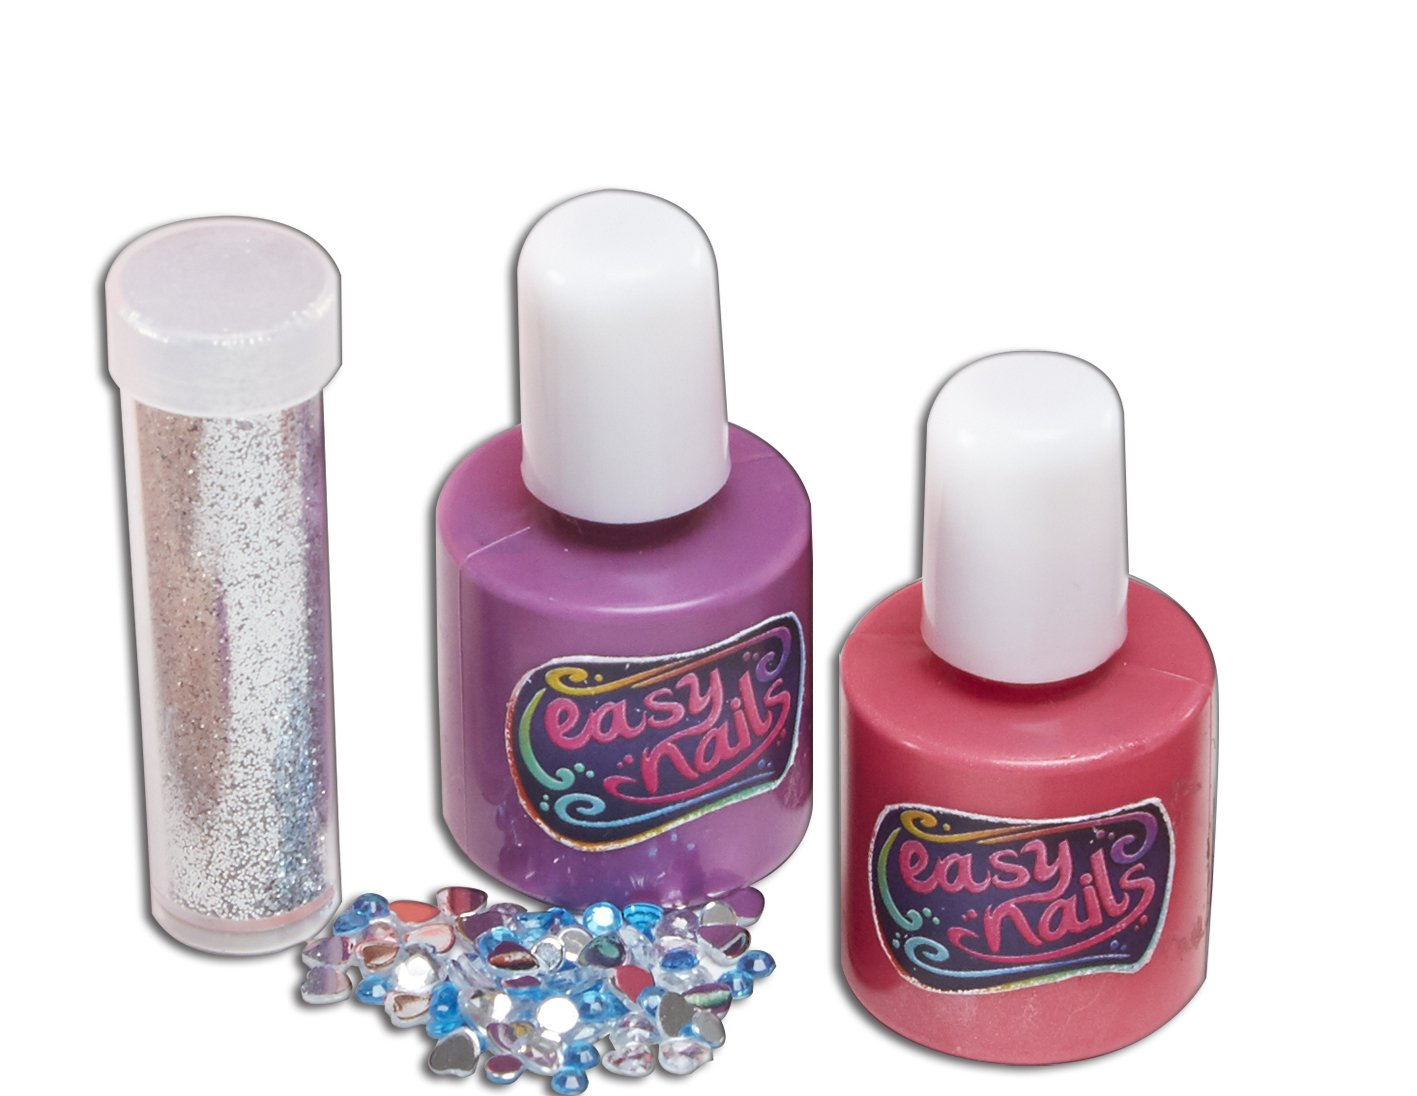 Amazon.com: Easy Nail Spa Kit by Easy Nail: Health & Personal Care